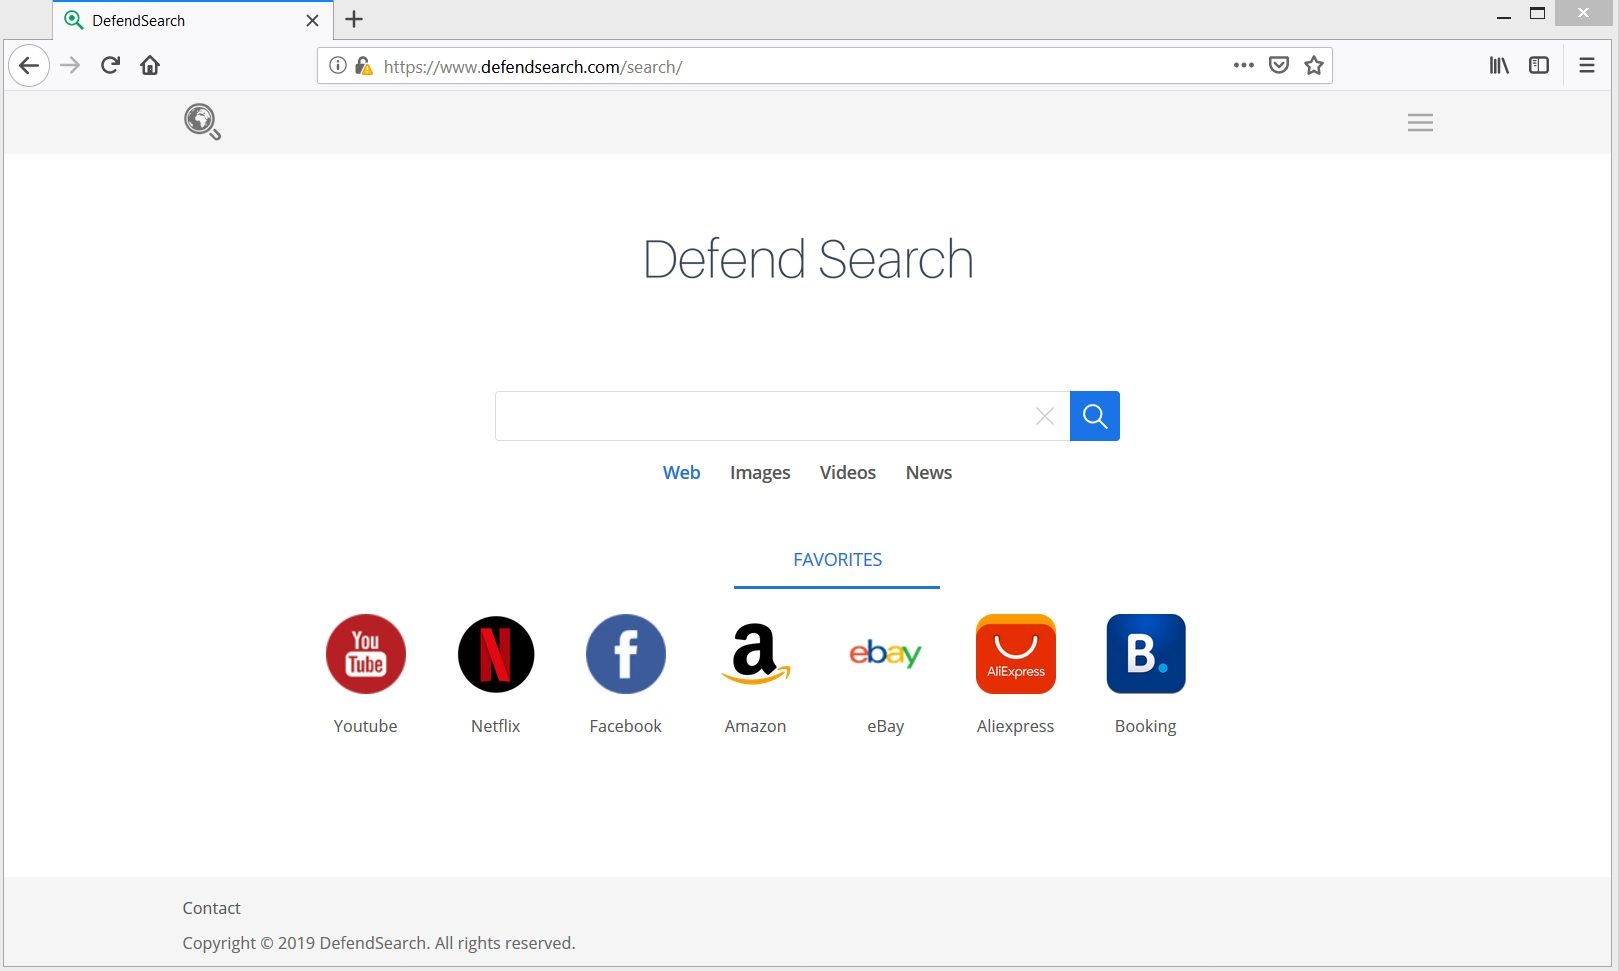 defend search hoax search engine sensorstechforum removal guide